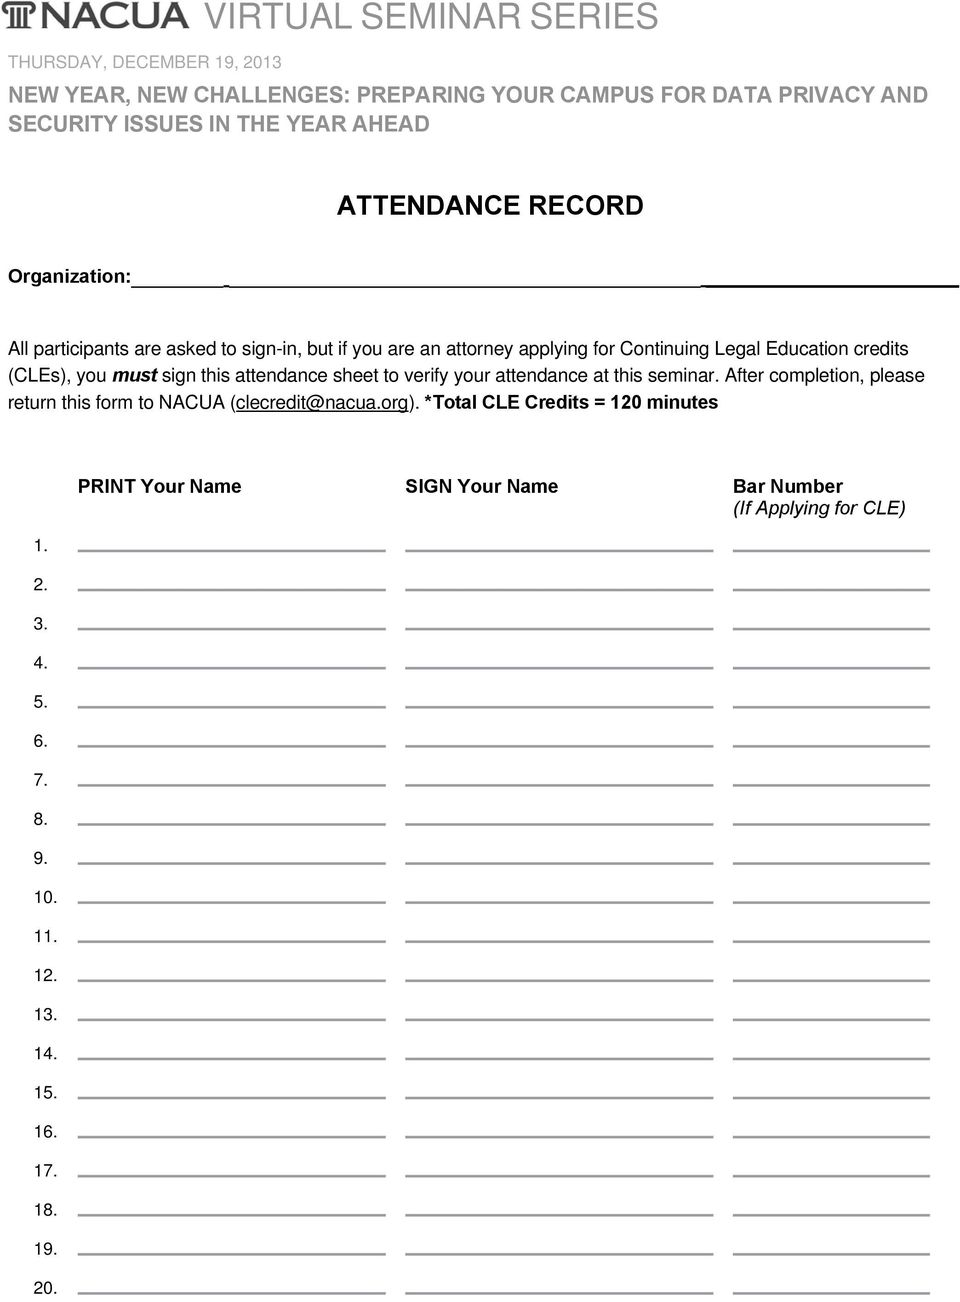 you must sign this attendance sheet to verify your attendance at this seminar. After completion, please return this form to NACUA (clecredit@nacua.org).